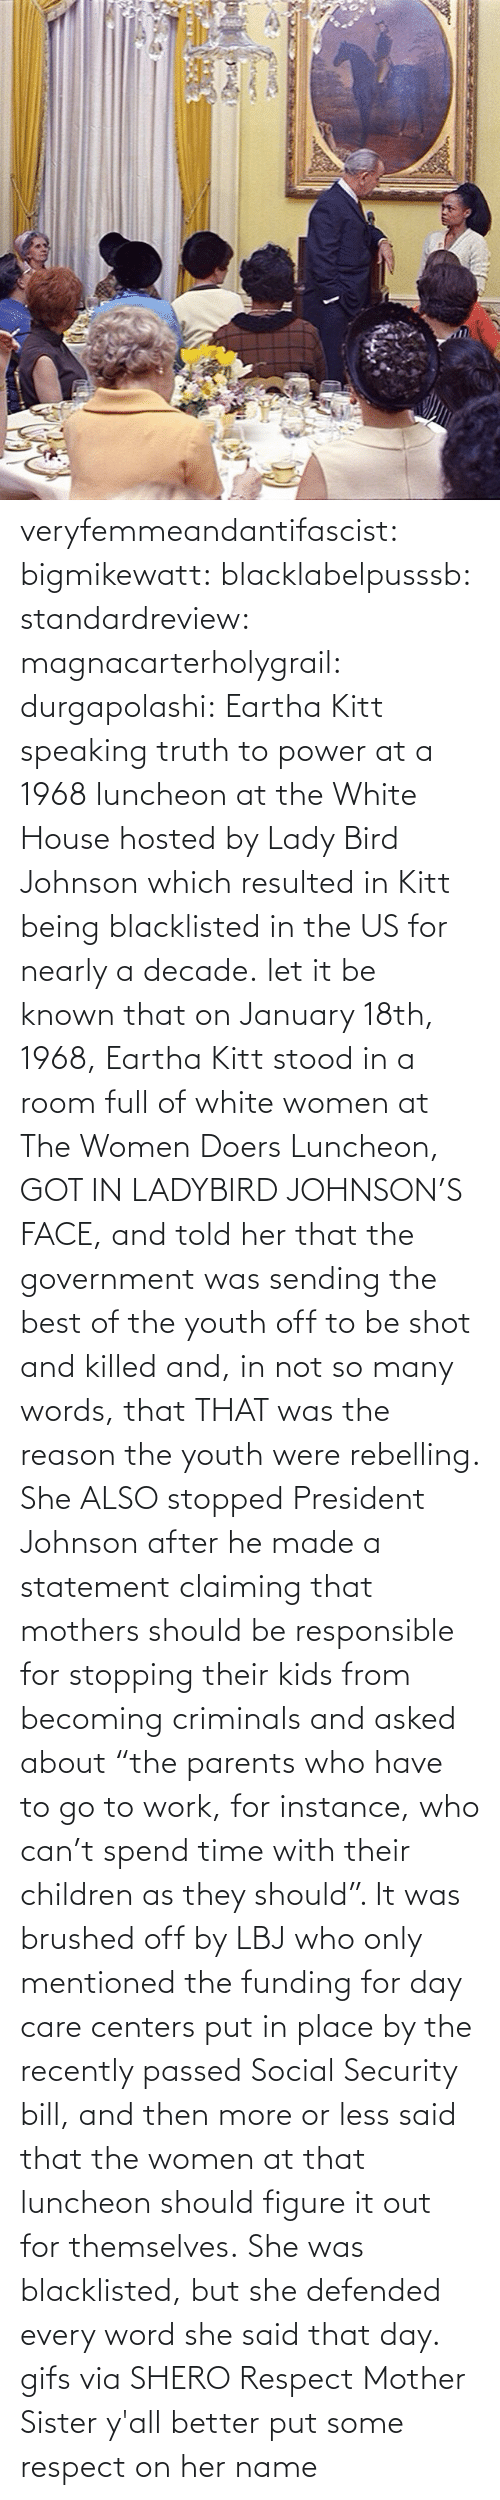 "But She: veryfemmeandantifascist: bigmikewatt:  blacklabelpusssb:  standardreview:  magnacarterholygrail:  durgapolashi:  Eartha Kitt speaking truth to power at a 1968 luncheon at the White House hosted by Lady Bird Johnson which resulted in Kitt being blacklisted in the US for nearly a decade.  let it be known that on January 18th, 1968, Eartha Kitt stood in a room full of white women at The Women Doers Luncheon, GOT IN LADYBIRD JOHNSON'S FACE, and told her that the government was sending the best of the youth off to be shot and killed and, in not so many words, that THAT was the reason the youth were rebelling. She ALSO stopped President Johnson after he made a statement claiming that mothers should be responsible for stopping their kids from becoming criminals and asked about ""the parents who have to go to work, for instance, who can't spend time with their children as they should"". It was brushed off by LBJ who only mentioned the funding for day care centers put in place by the recently passed Social Security bill, and then more or less said that the women at that luncheon should figure it out for themselves. She was blacklisted, but she defended every word she said that day.    gifs via  SHERO   Respect Mother Sister  y'all better put some respect on her name"